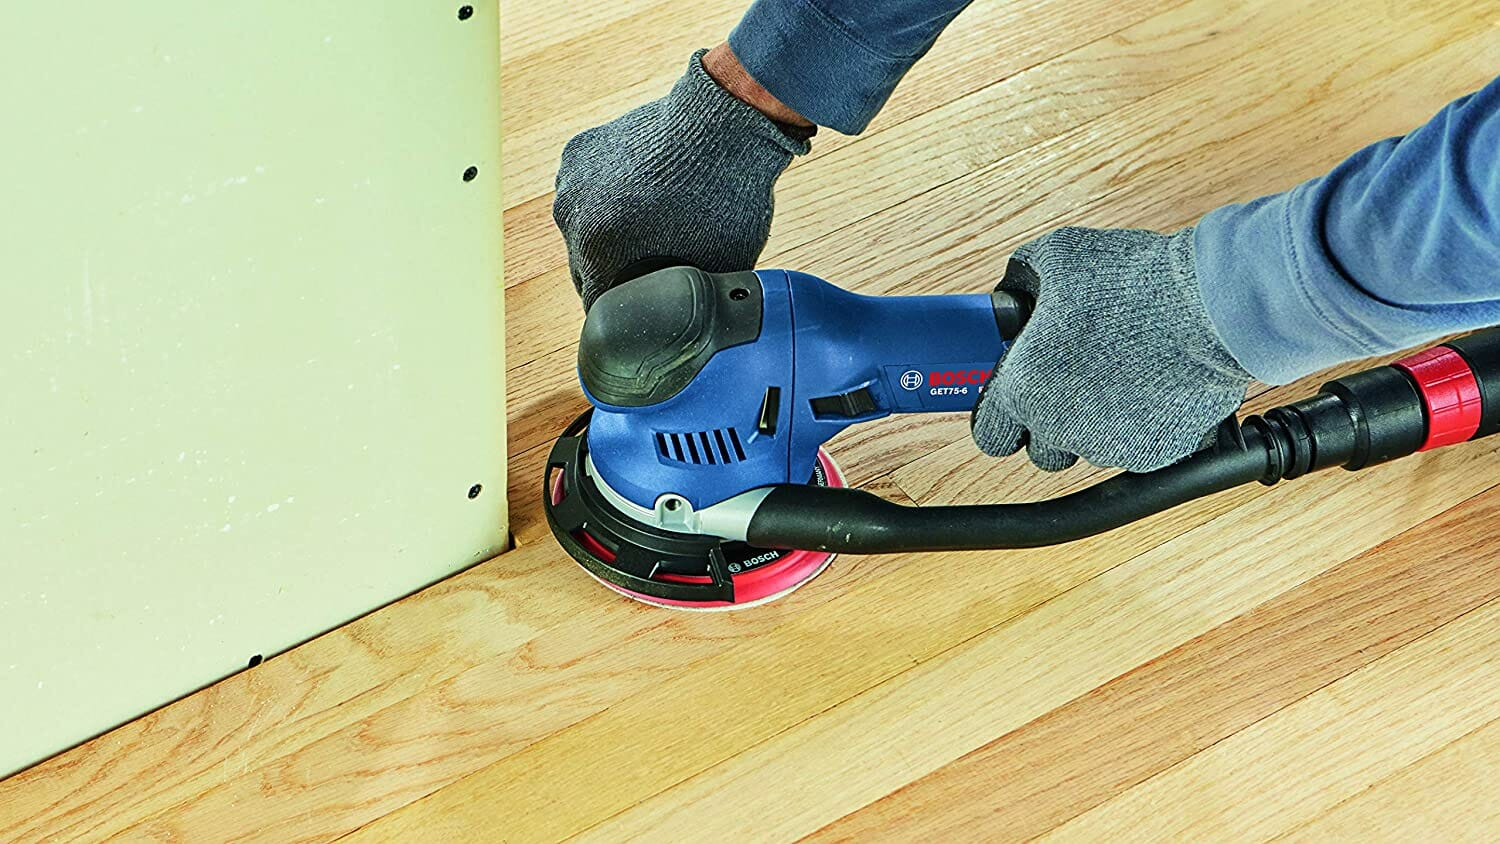 bosch 5 orbital sander auxiliary handle for great control and accuracy